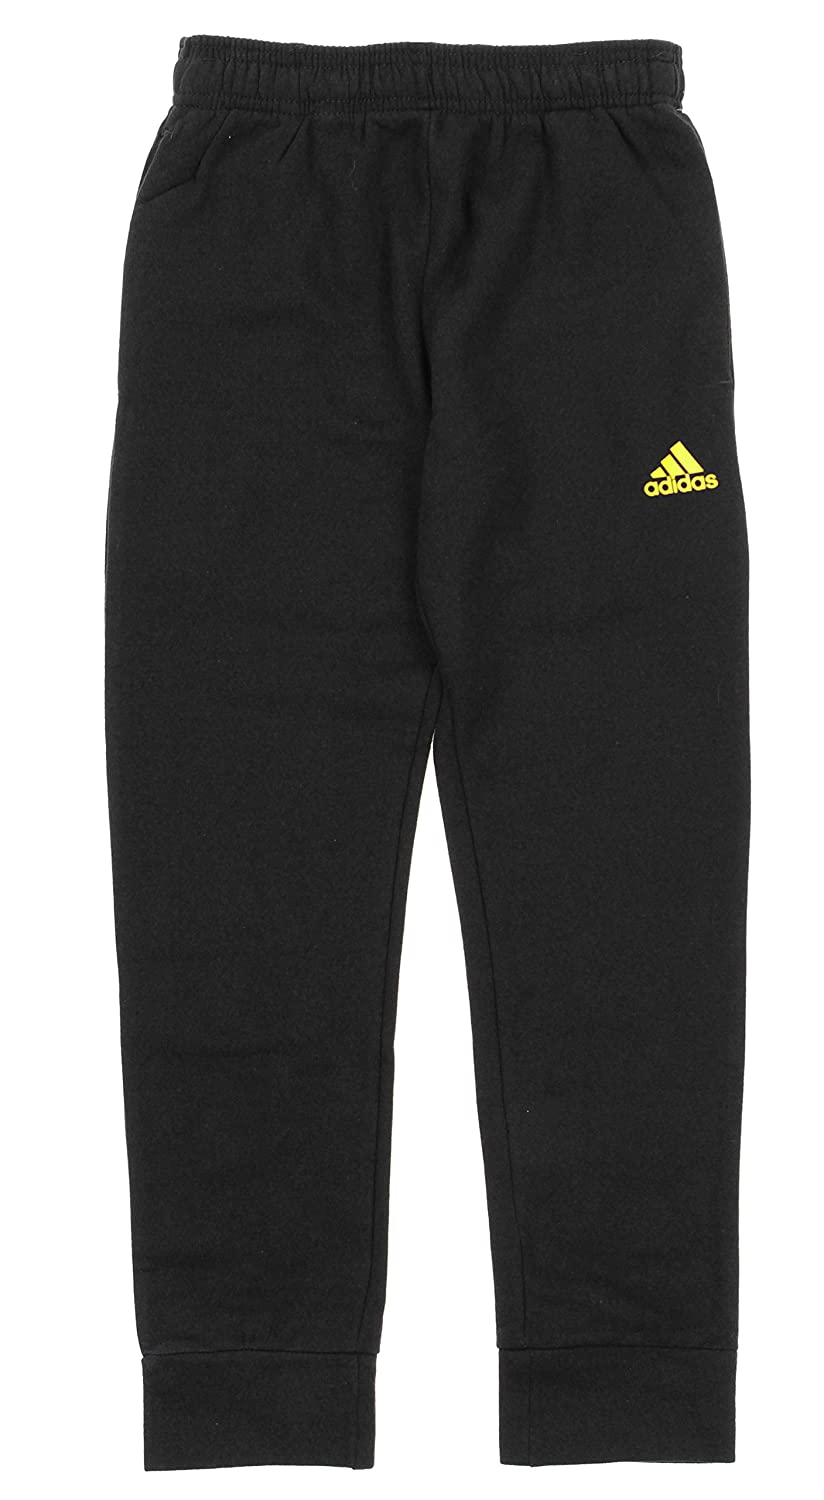 Adidas Big Boys Youth Game Ready Slim Fit Cuffed Fleece Pants, Color Options